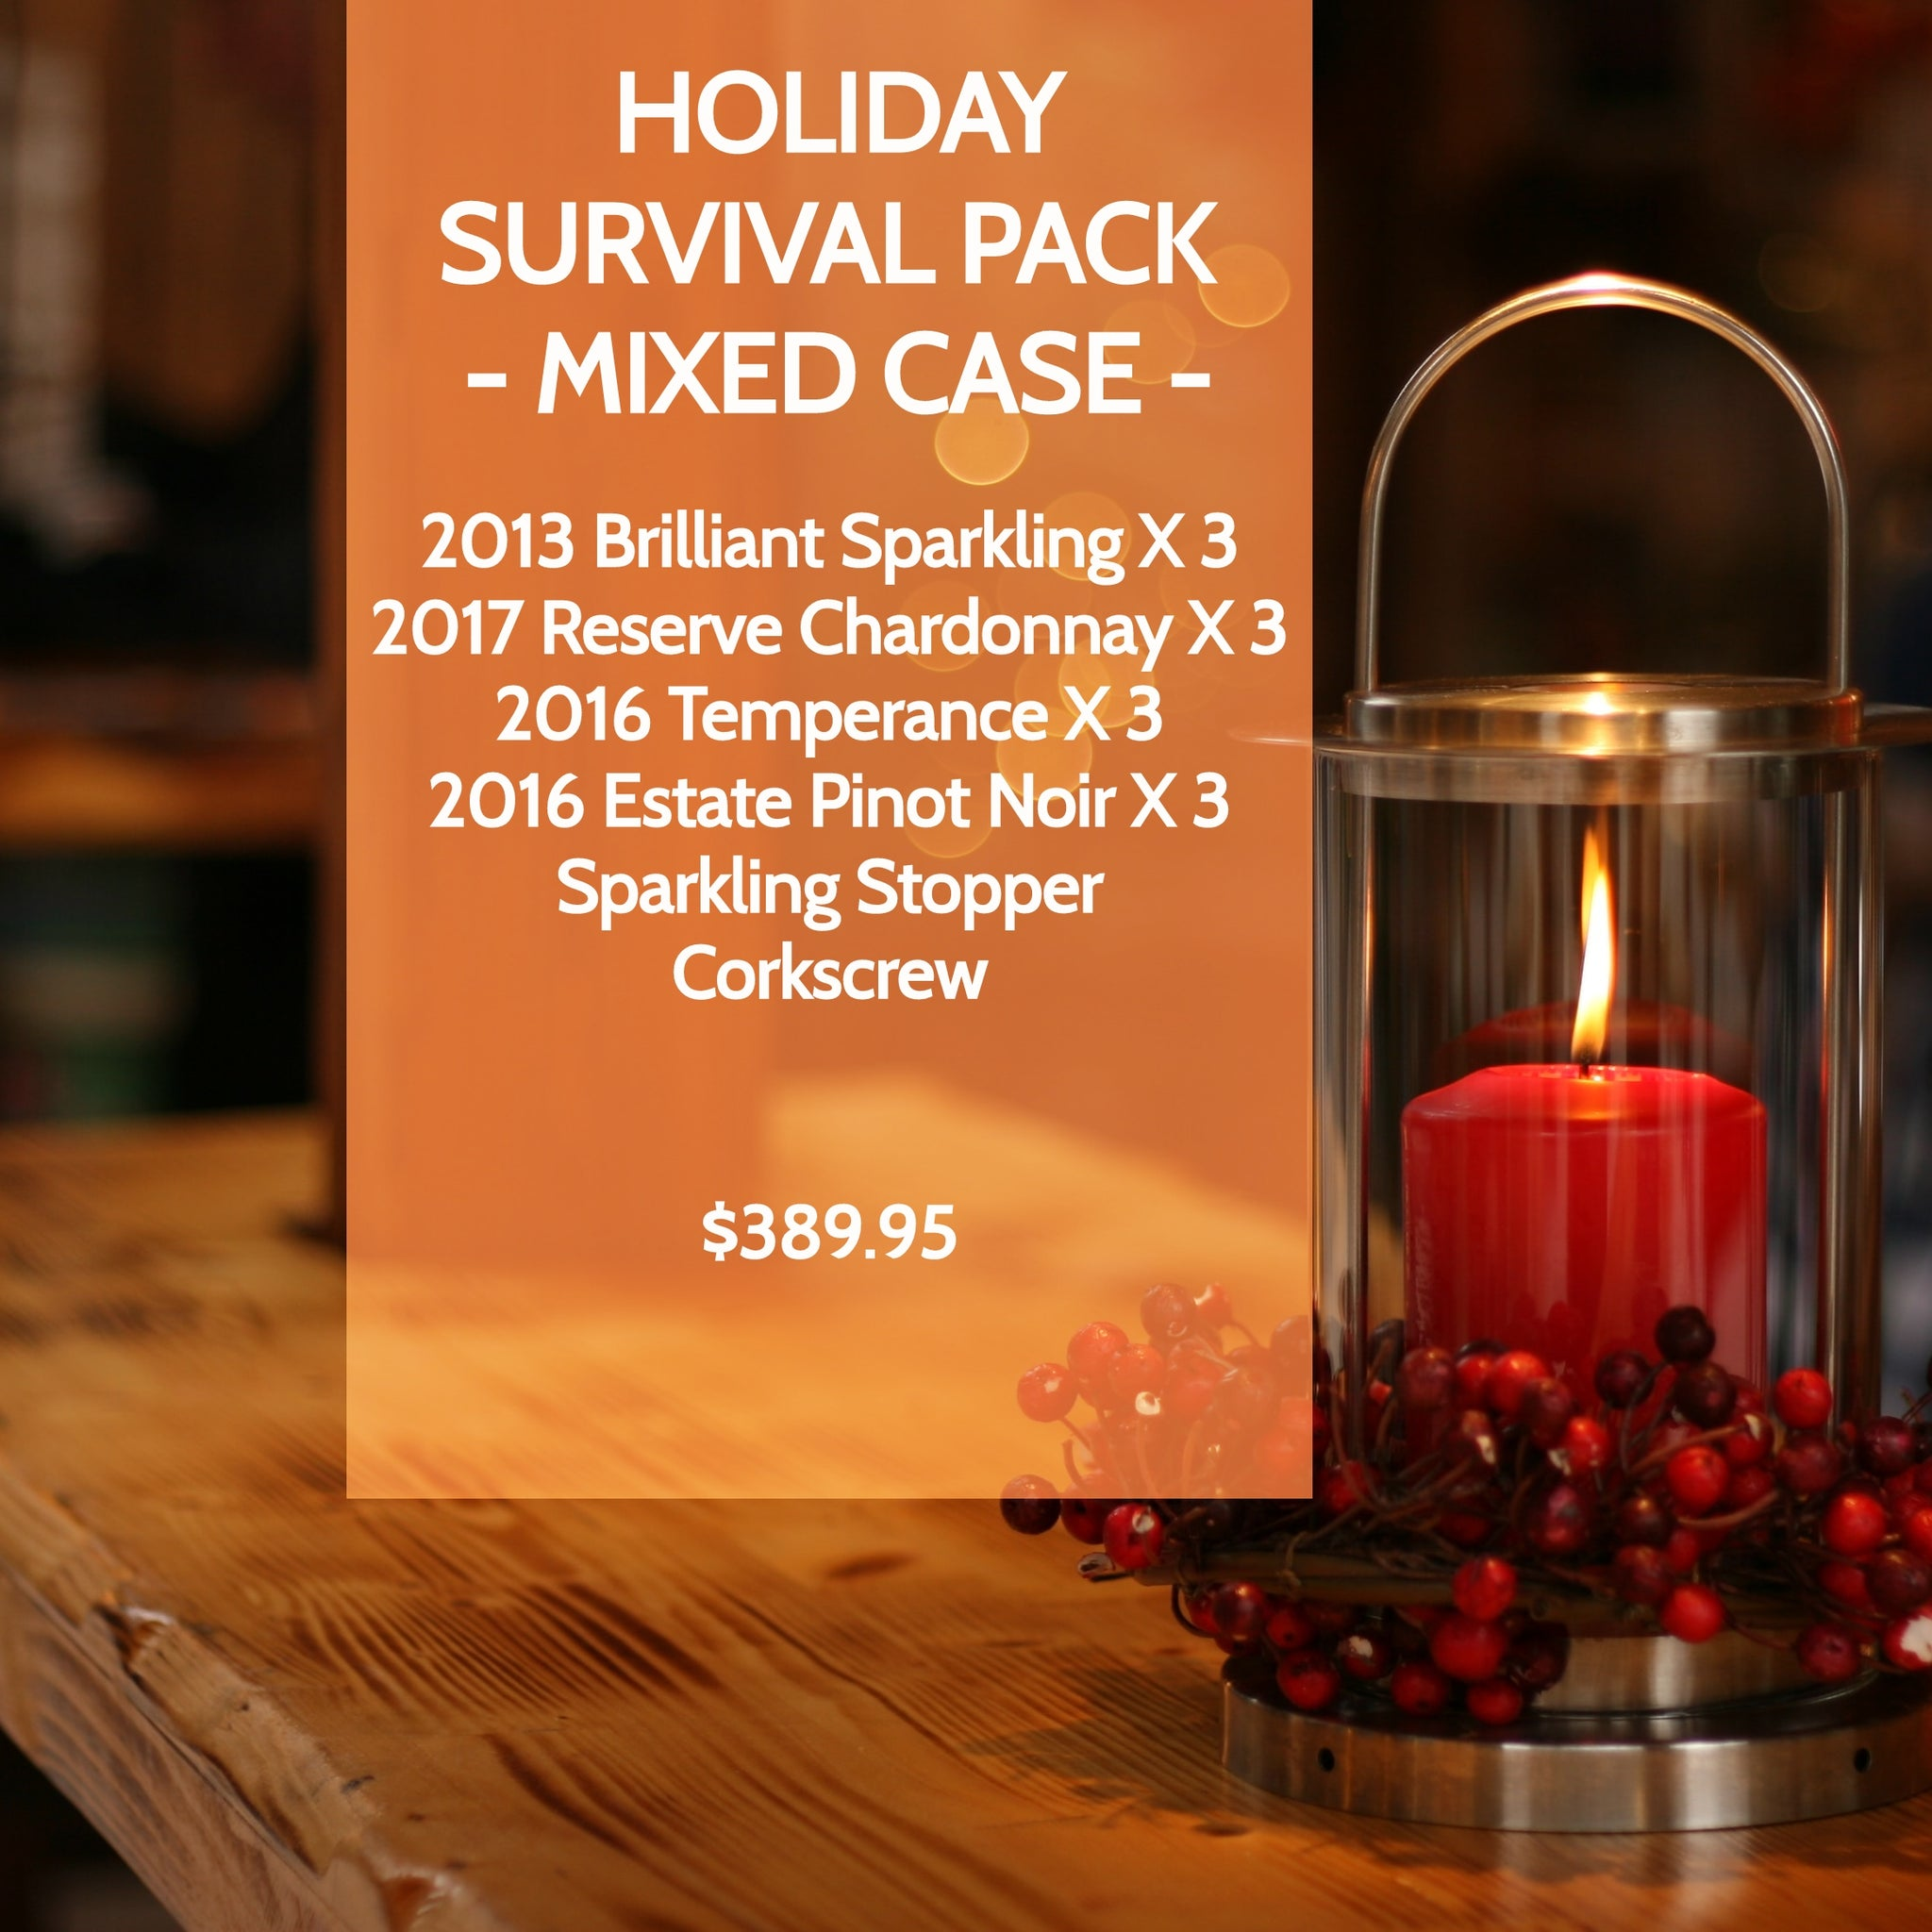 Holiday Survival Pack - Mixed Case - Westcott Wines